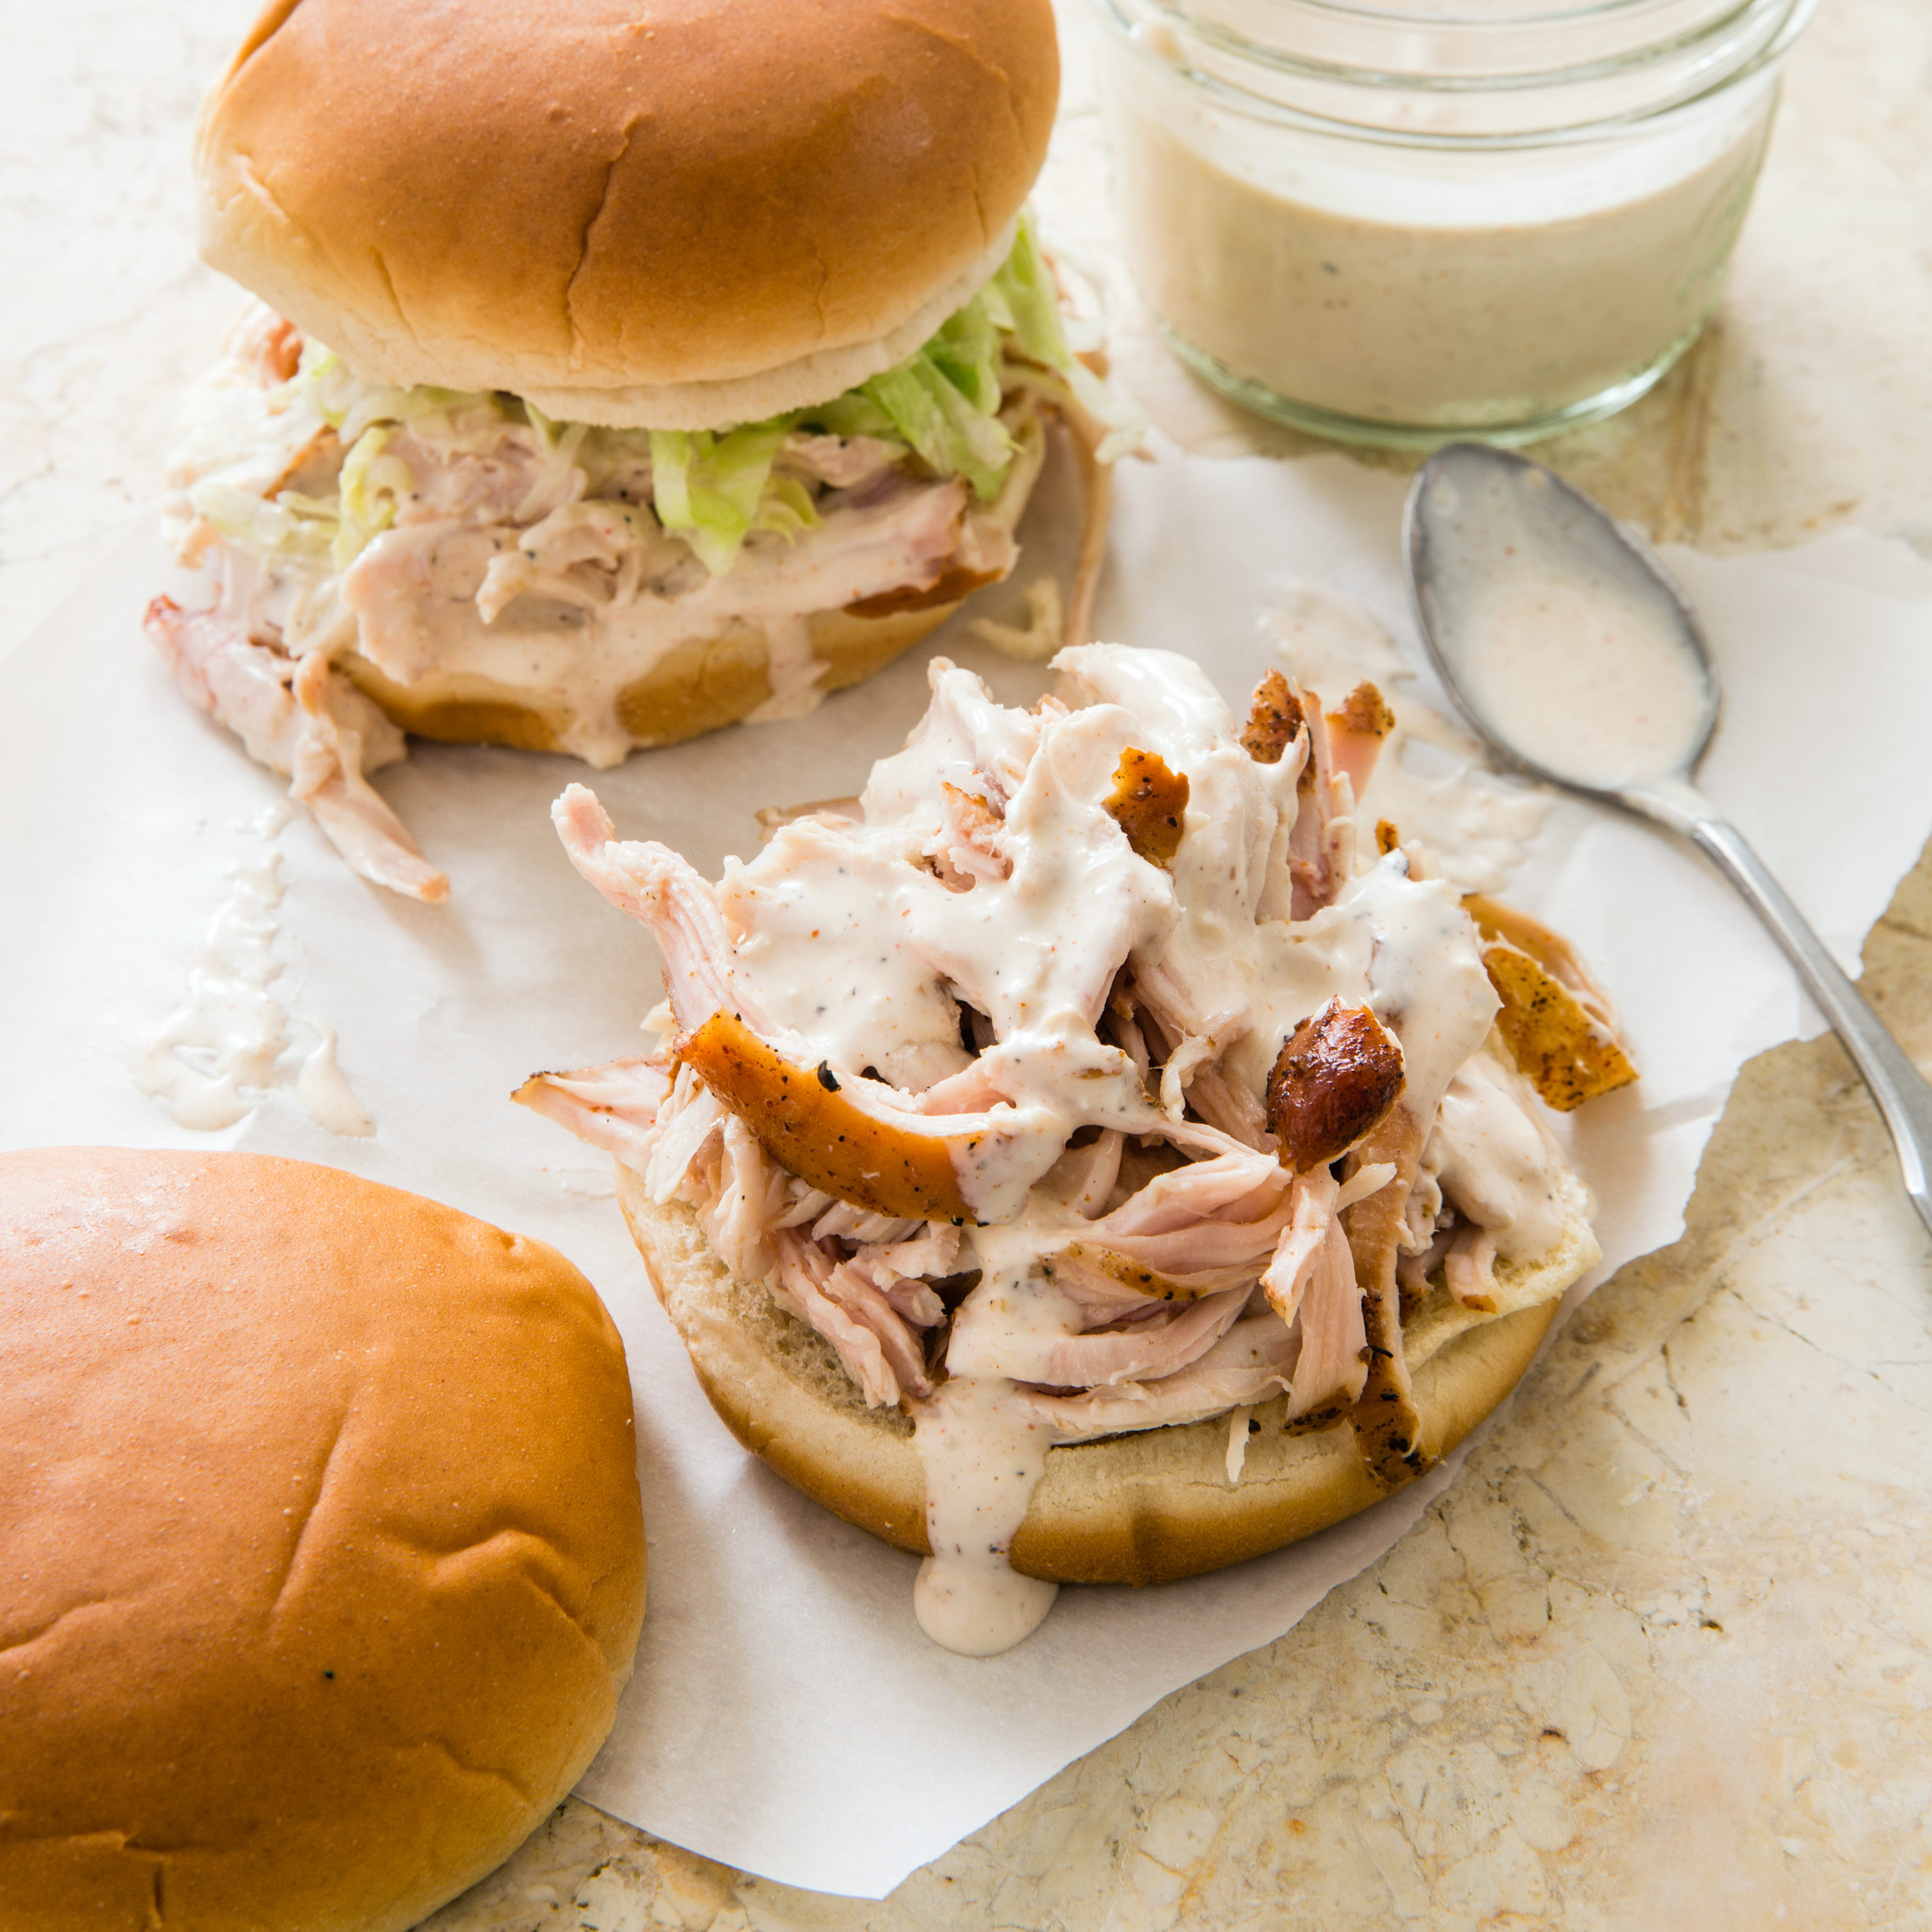 Tennessee Pulled Turkey Sandwiches | Cook's Country